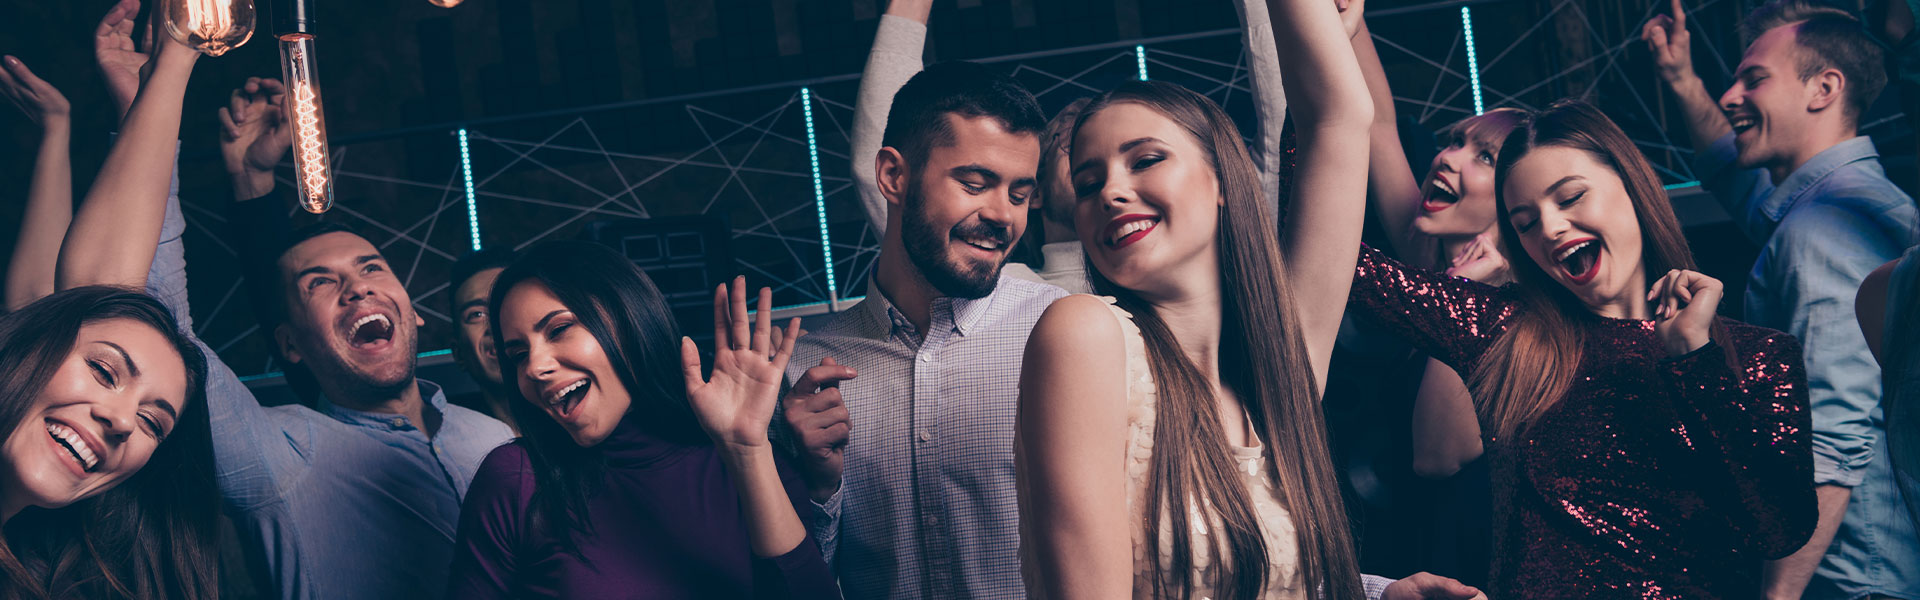 Tanzpartys und Clubs in Ansbach